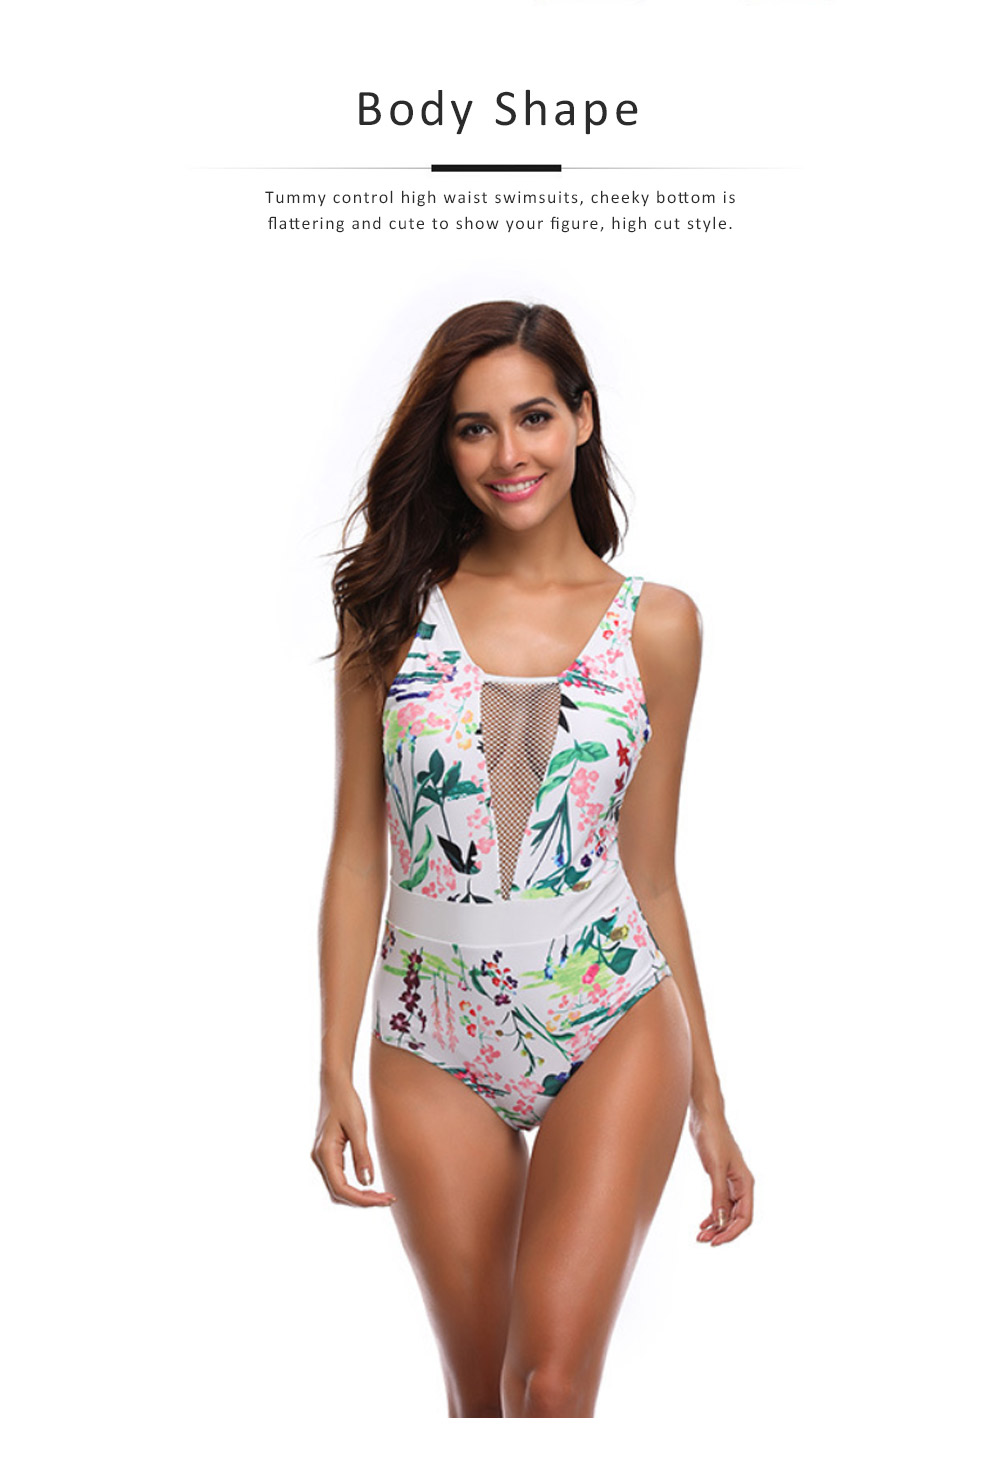 Womens One Piece Swimsuits Mesh V Neck Monokini Bathing Suits Tummy Control Floral Printed Swimwear 5